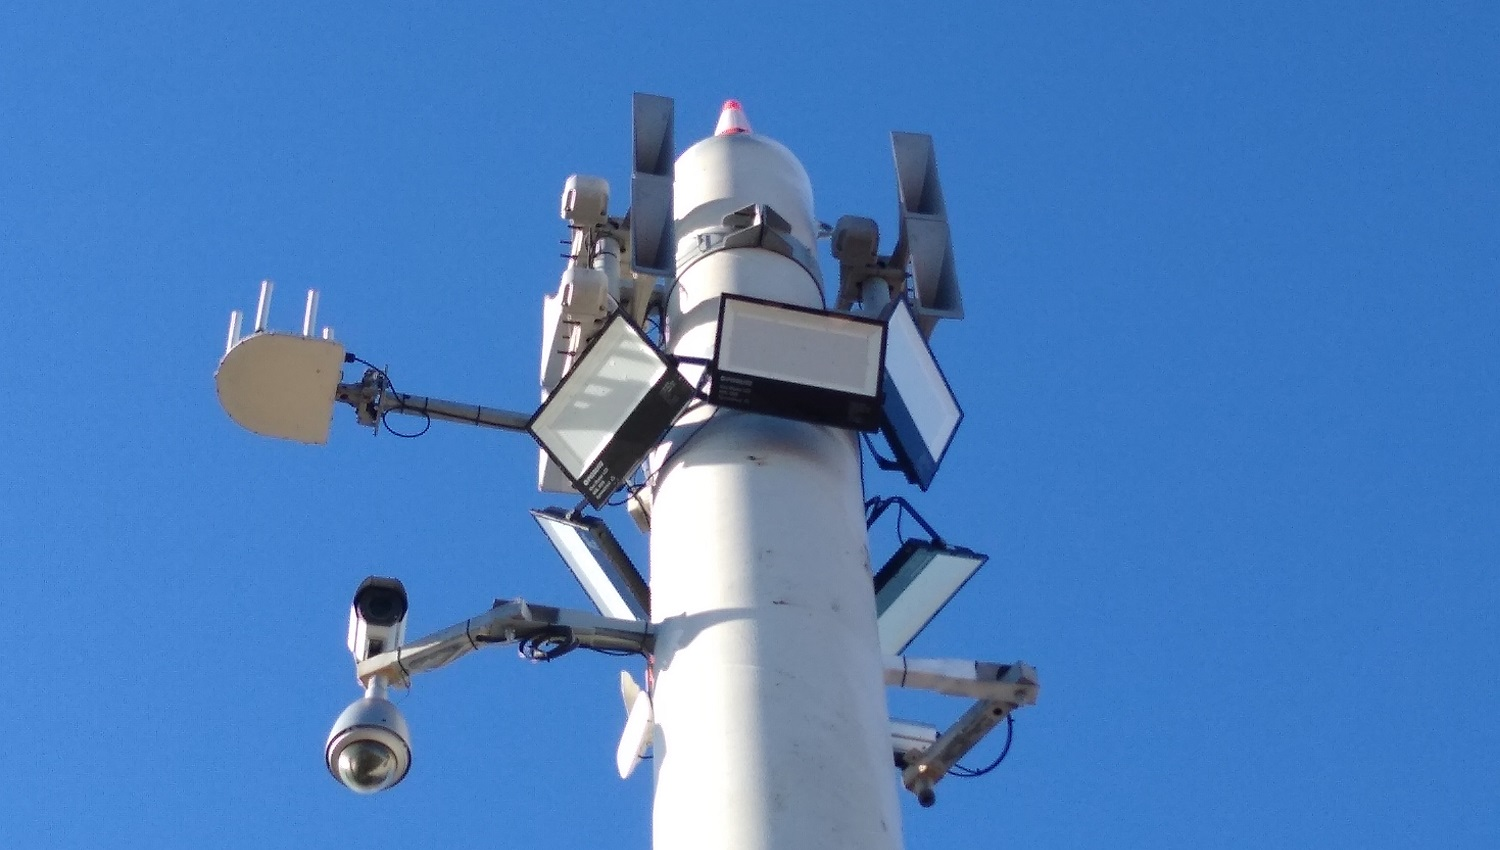 Public Address and Warning System in Napier Port, Hawke's Bay, New Zealand